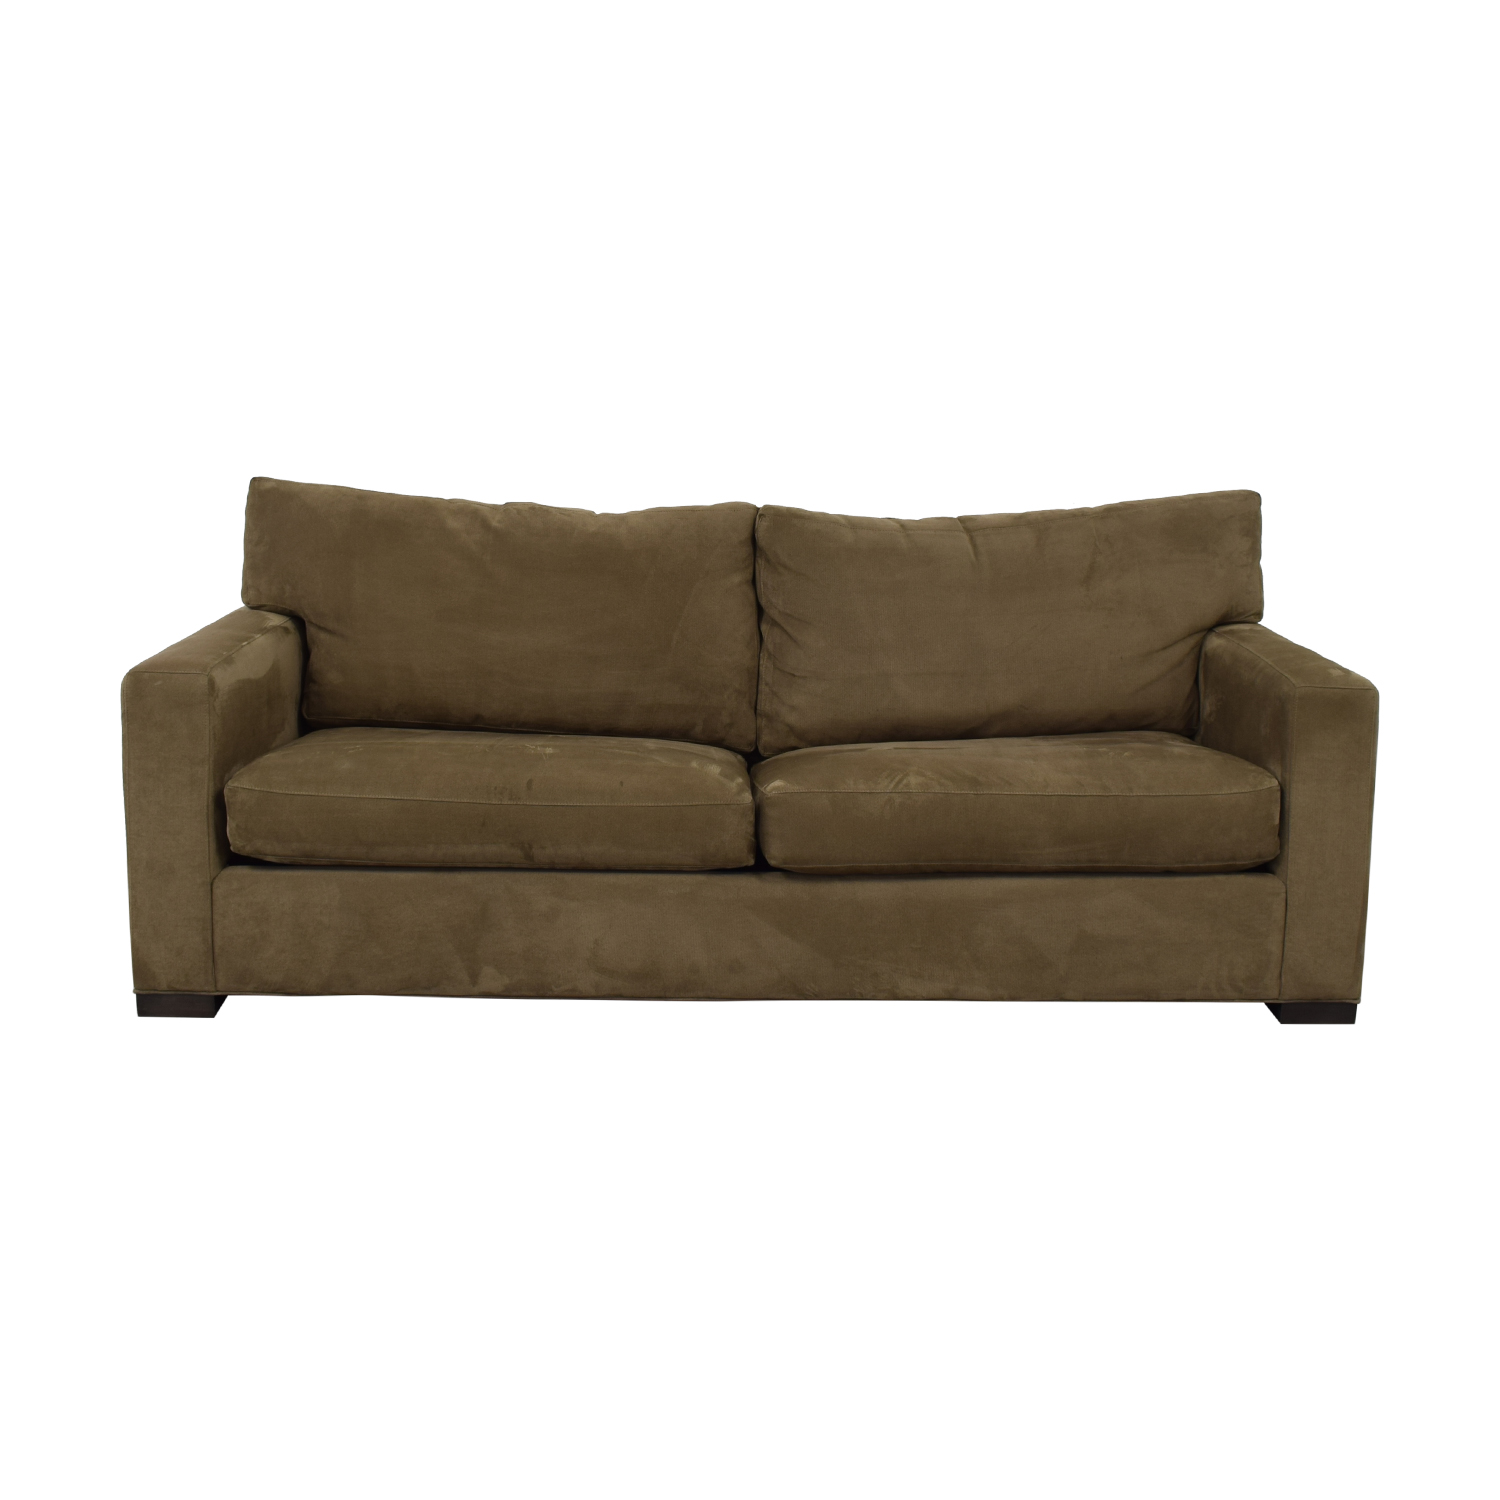 Crate & Barrel Axis II Queen Sleeper Sofa sale